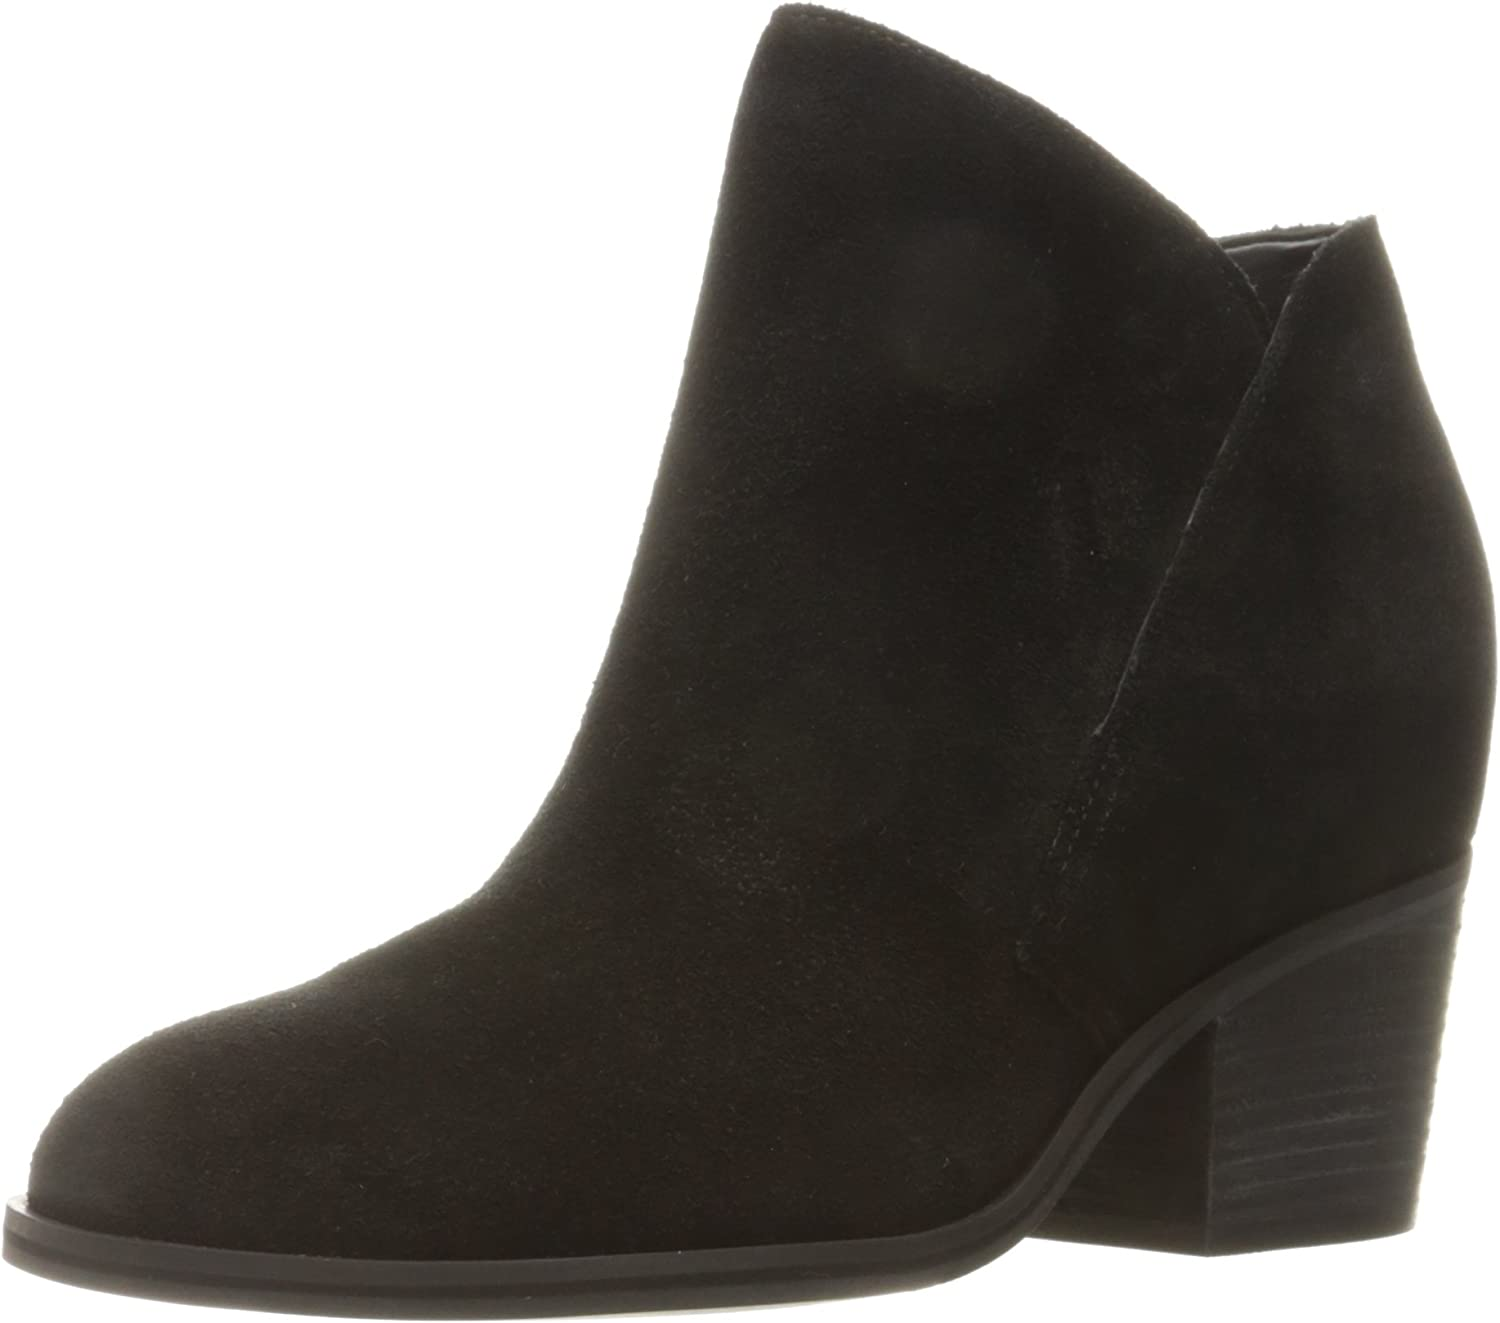 Jessica Simpson Women's Tandra Ankle Boot